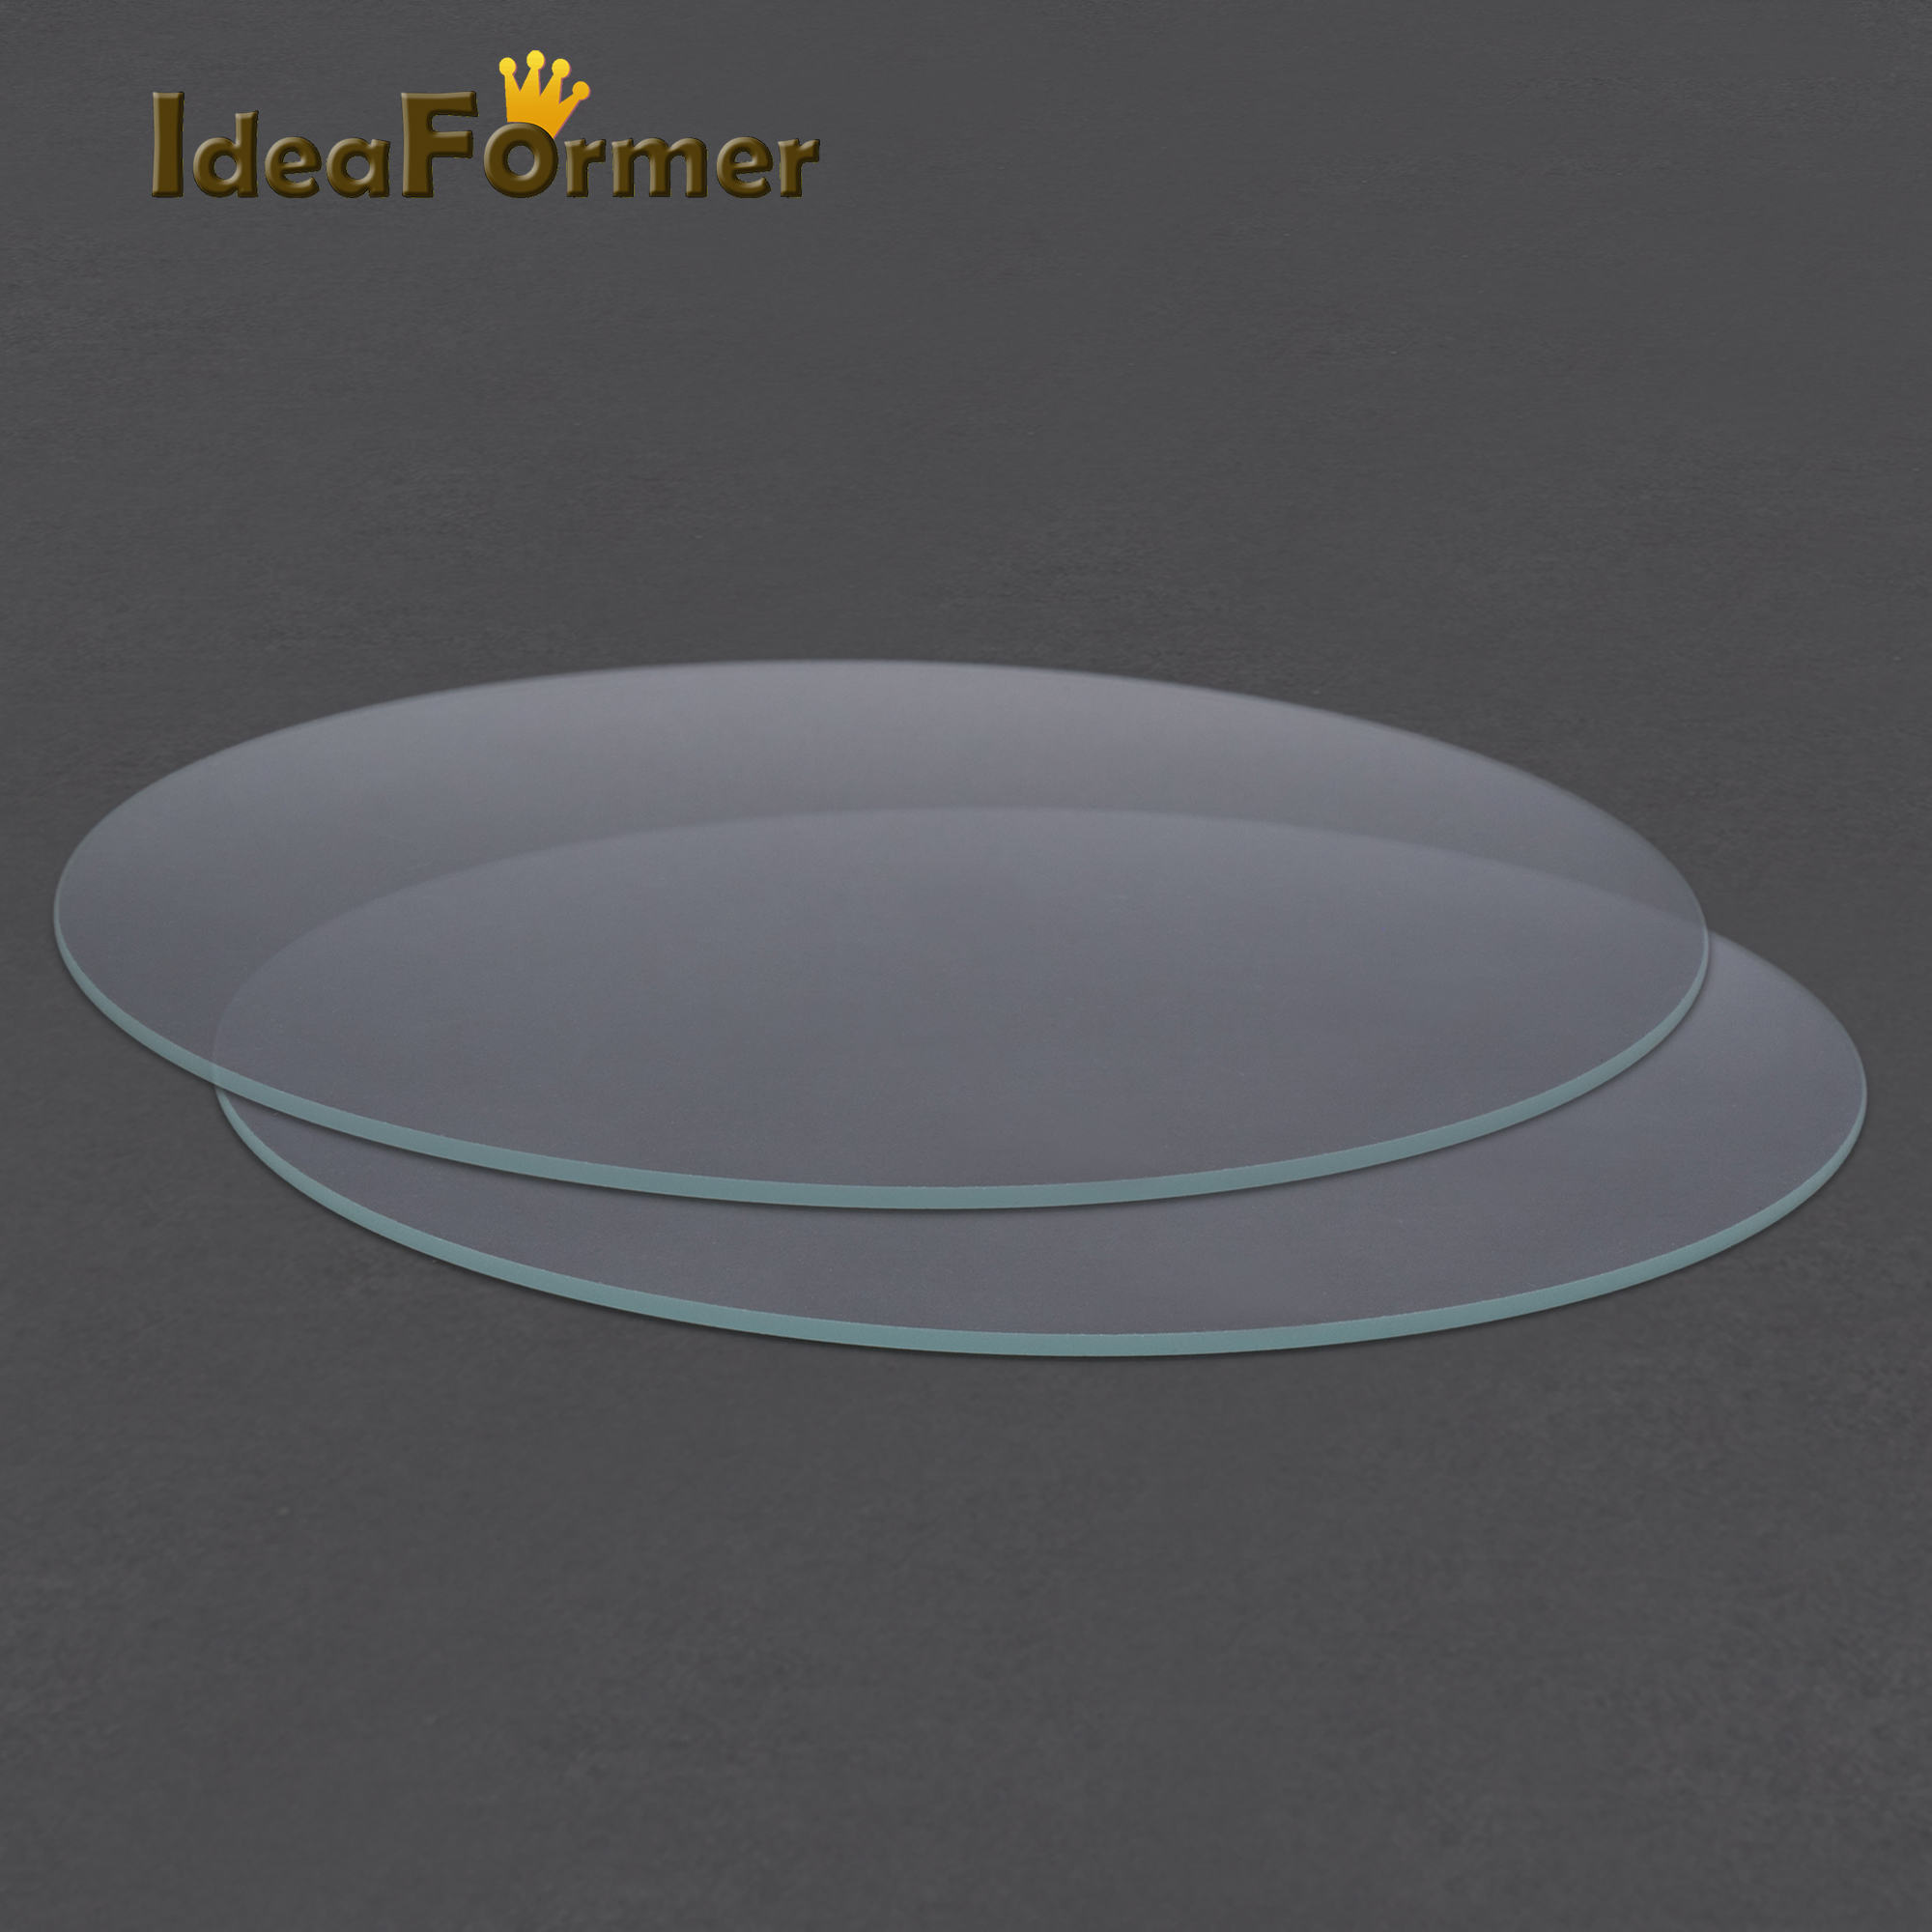 200 x 200mm Mirror Glass Plate For Heated 3D Printer Bed W Clips Creality Anet